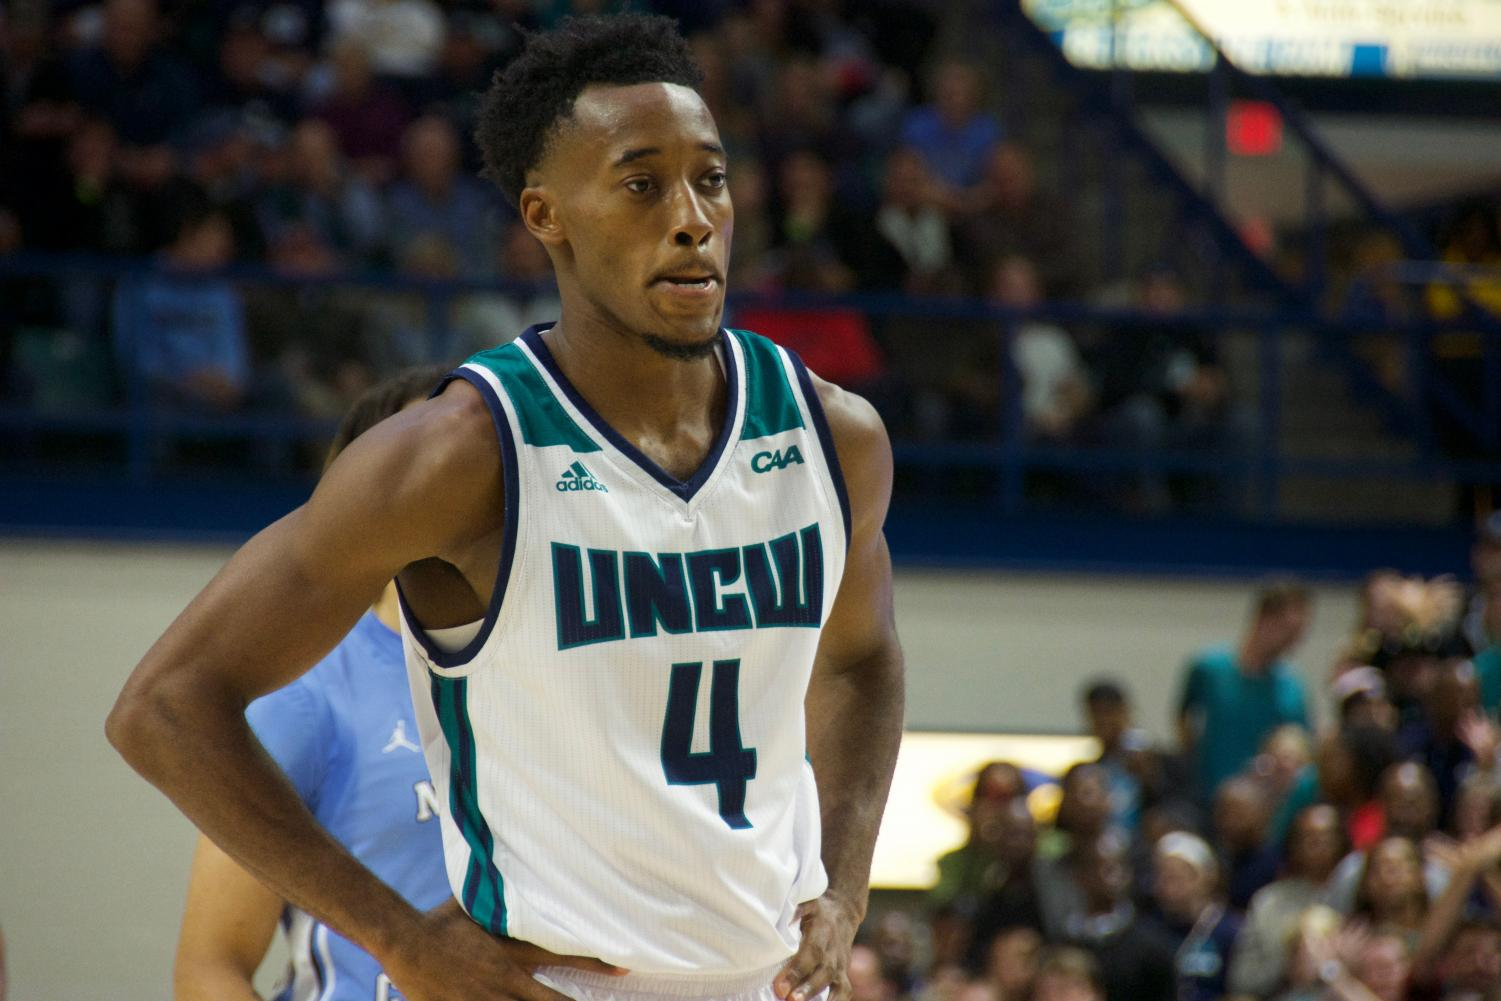 Mike Okauru (4) during UNCW's matchup with North Carolina on Nov. 8, 2019 at Trask Coliseum.